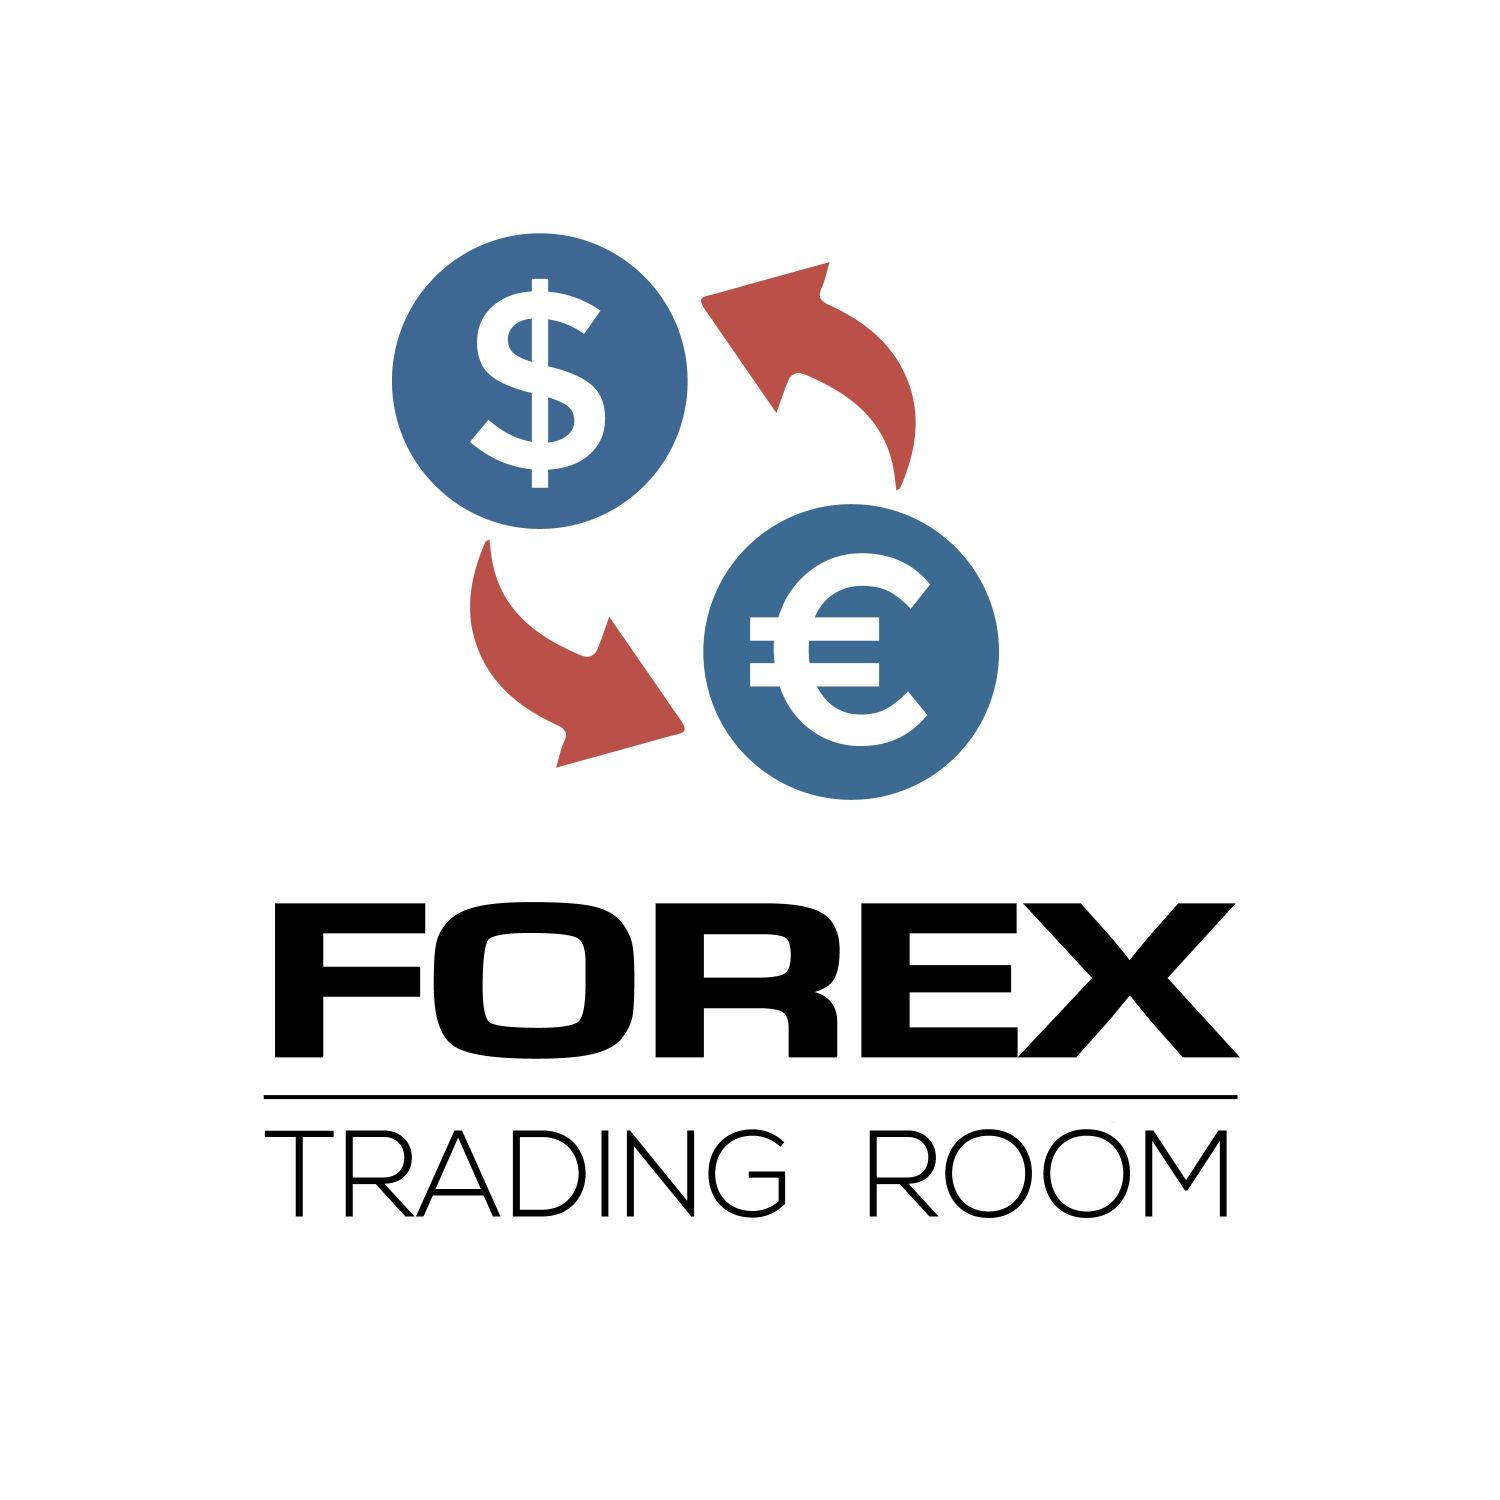 Forex Trading Room - FOREX Trading Room (Mississauga, ON) | Meetup